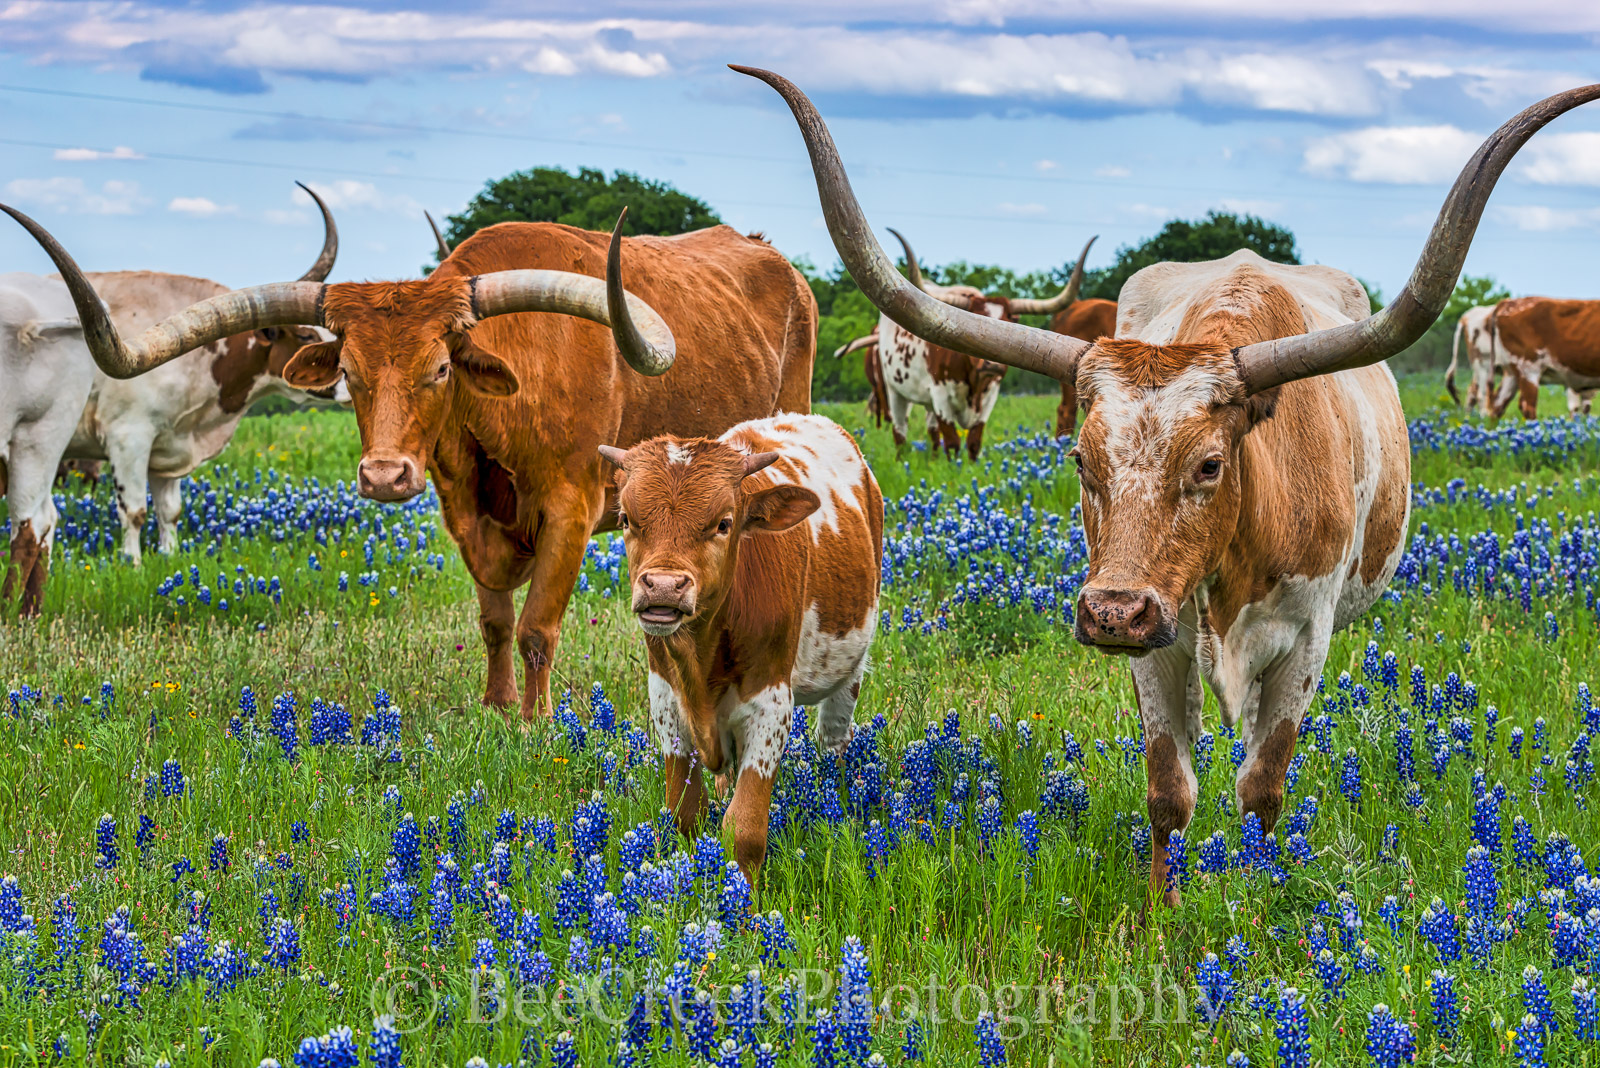 Texas Longhorns, bluebonnets, herd, bluebonnet, blue bonnets, landscape, landscape, calf, cattle, wildflowers, wildflower, horns, longhorn, Texas cattle, Hill Country, images of texas,